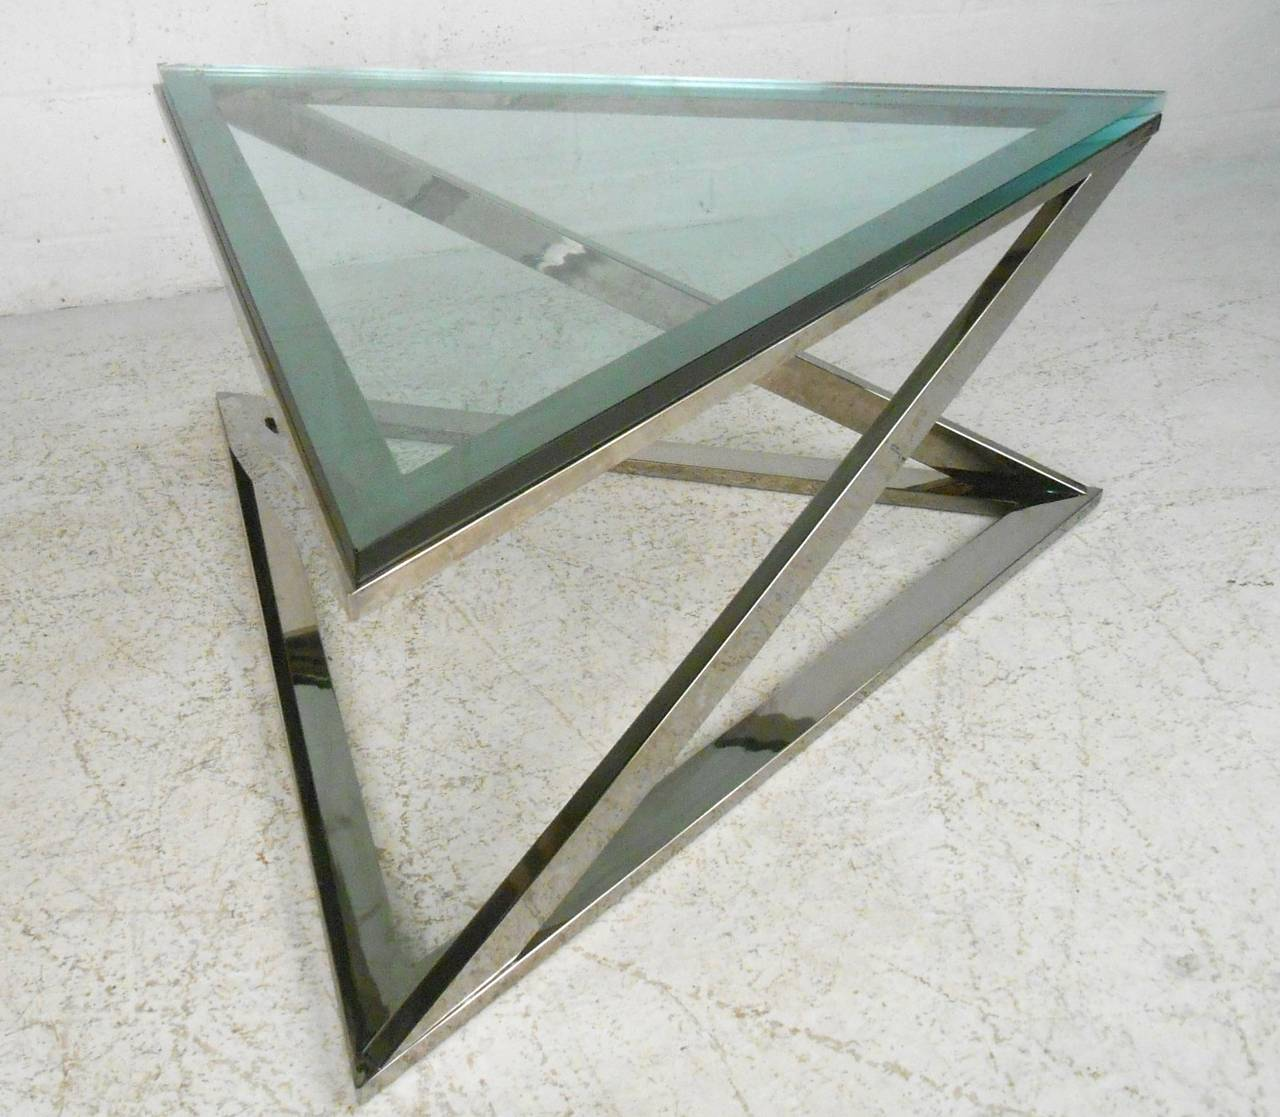 MidCentury Modern Style Triangular Chrome Coffee Table For Sale At - Mid century triangle coffee table